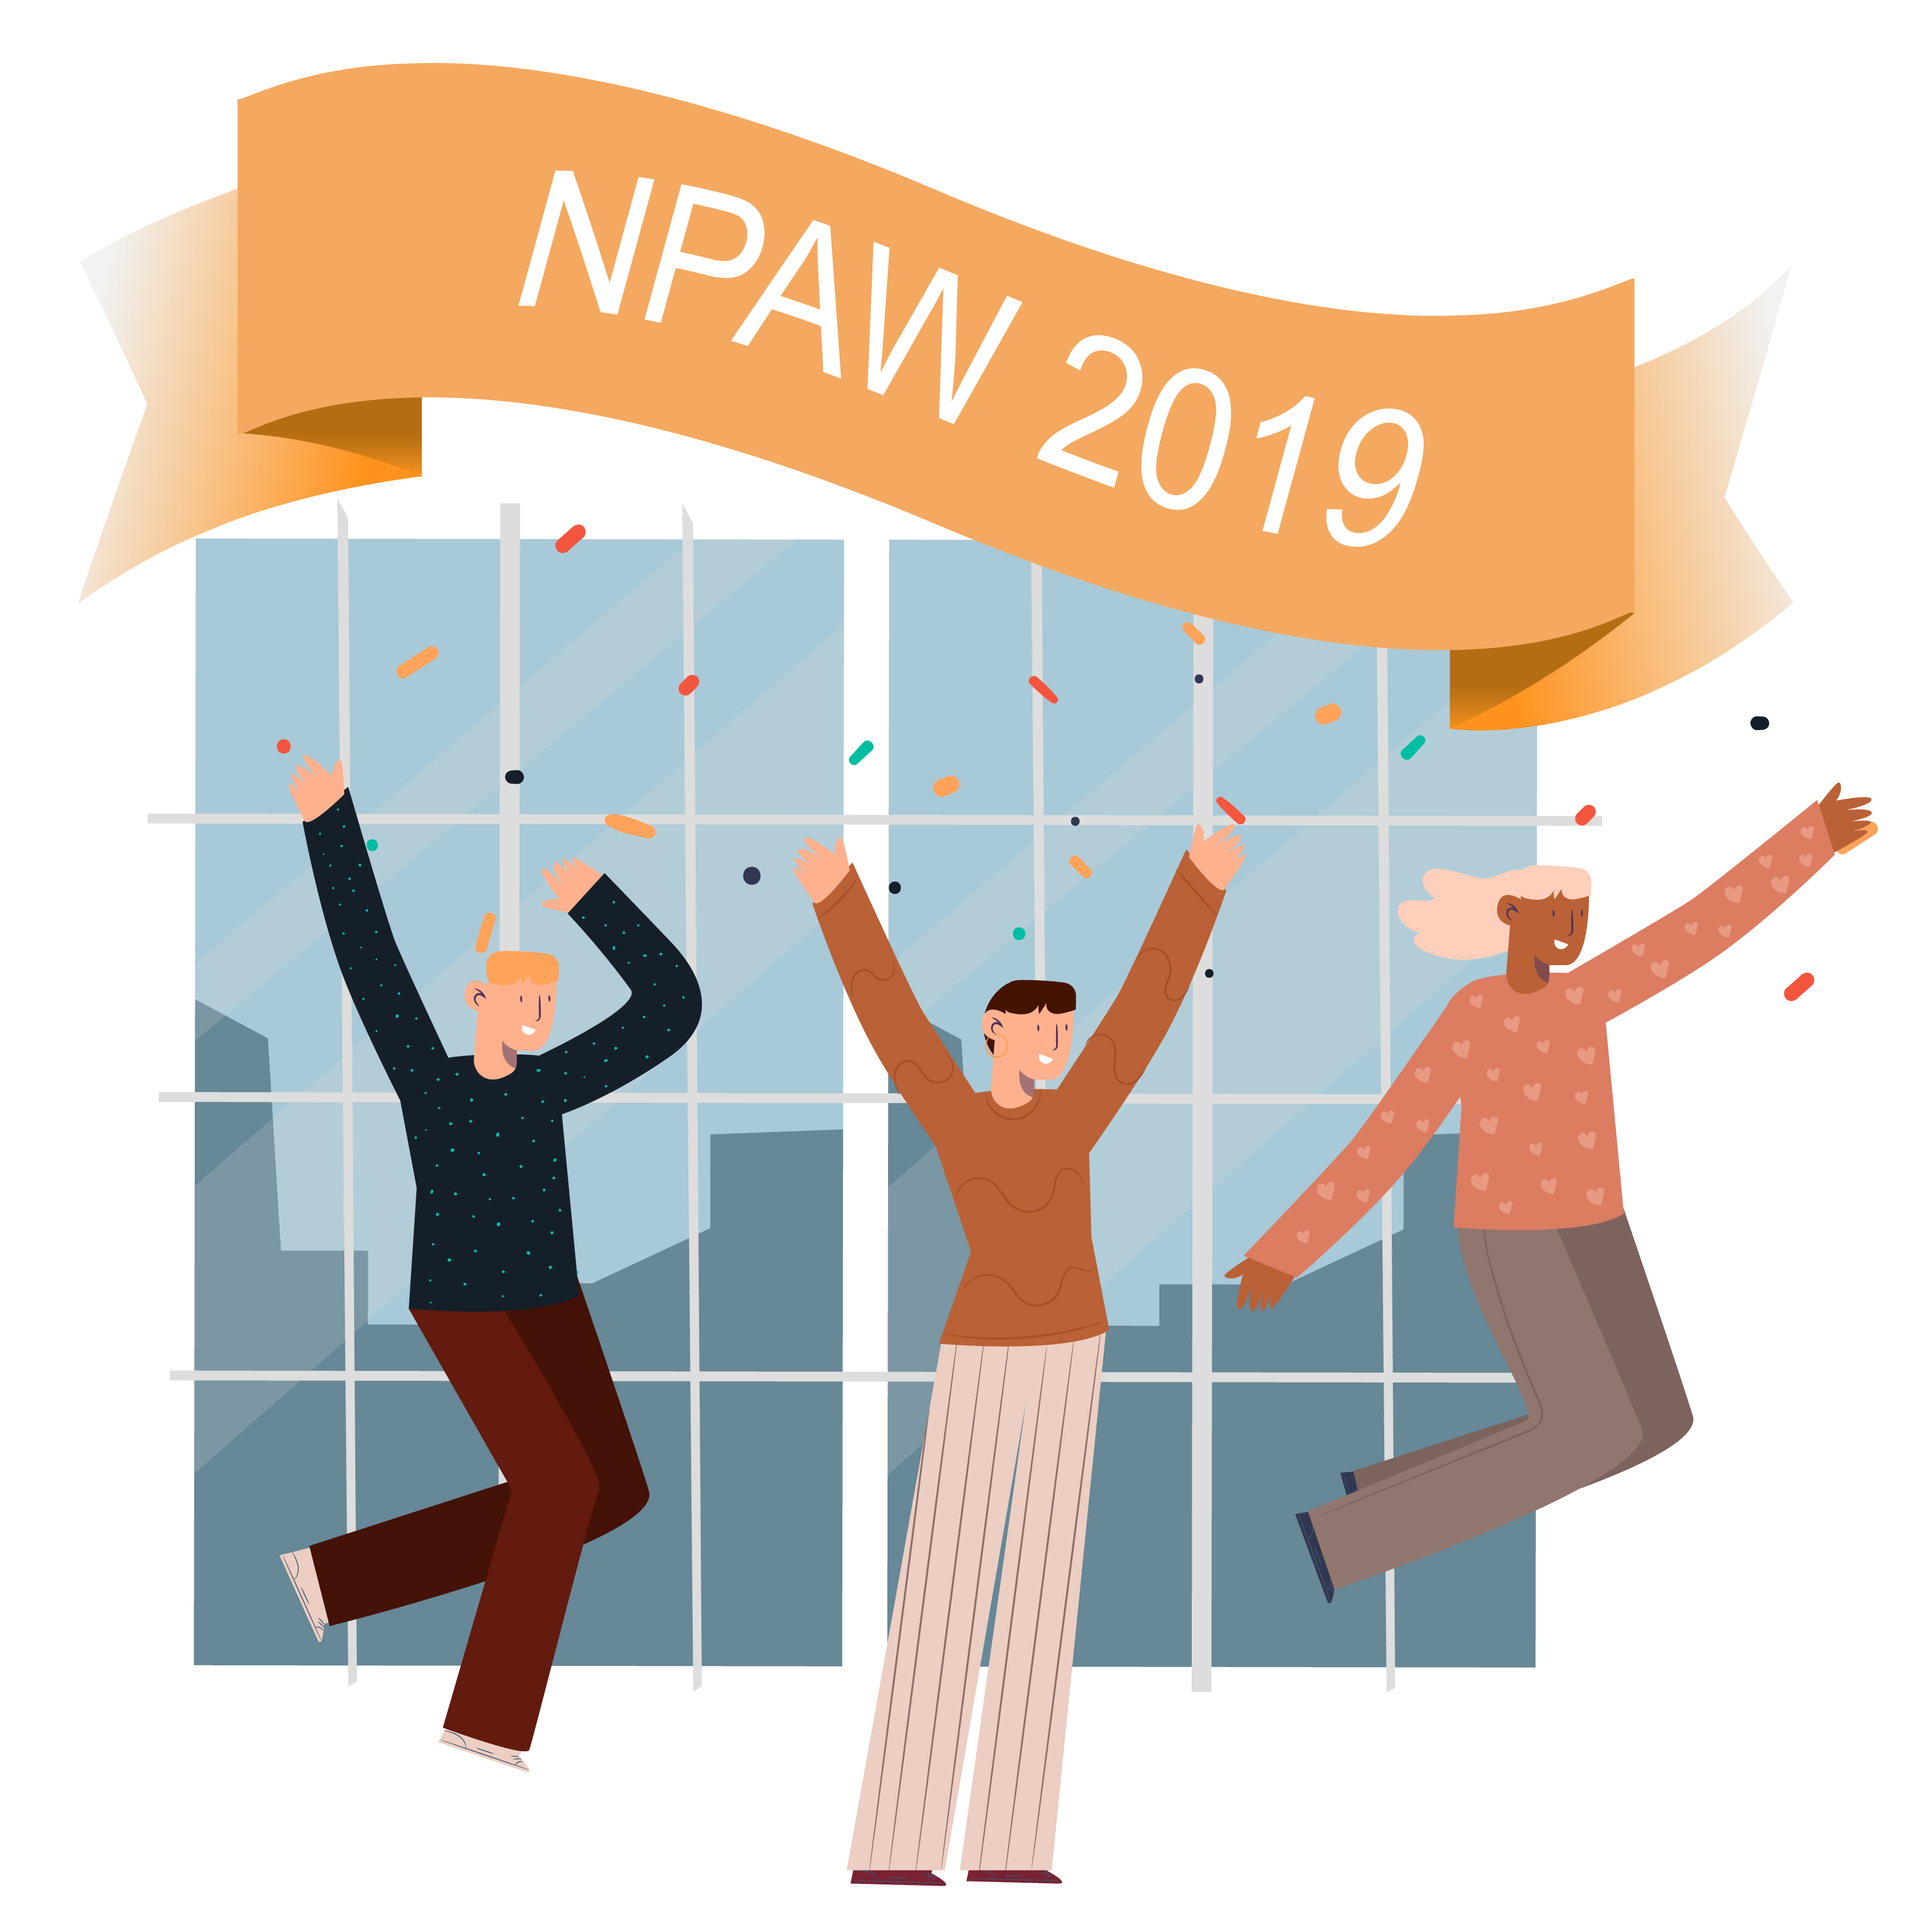 People celebrating with NPAW 2019 banner above